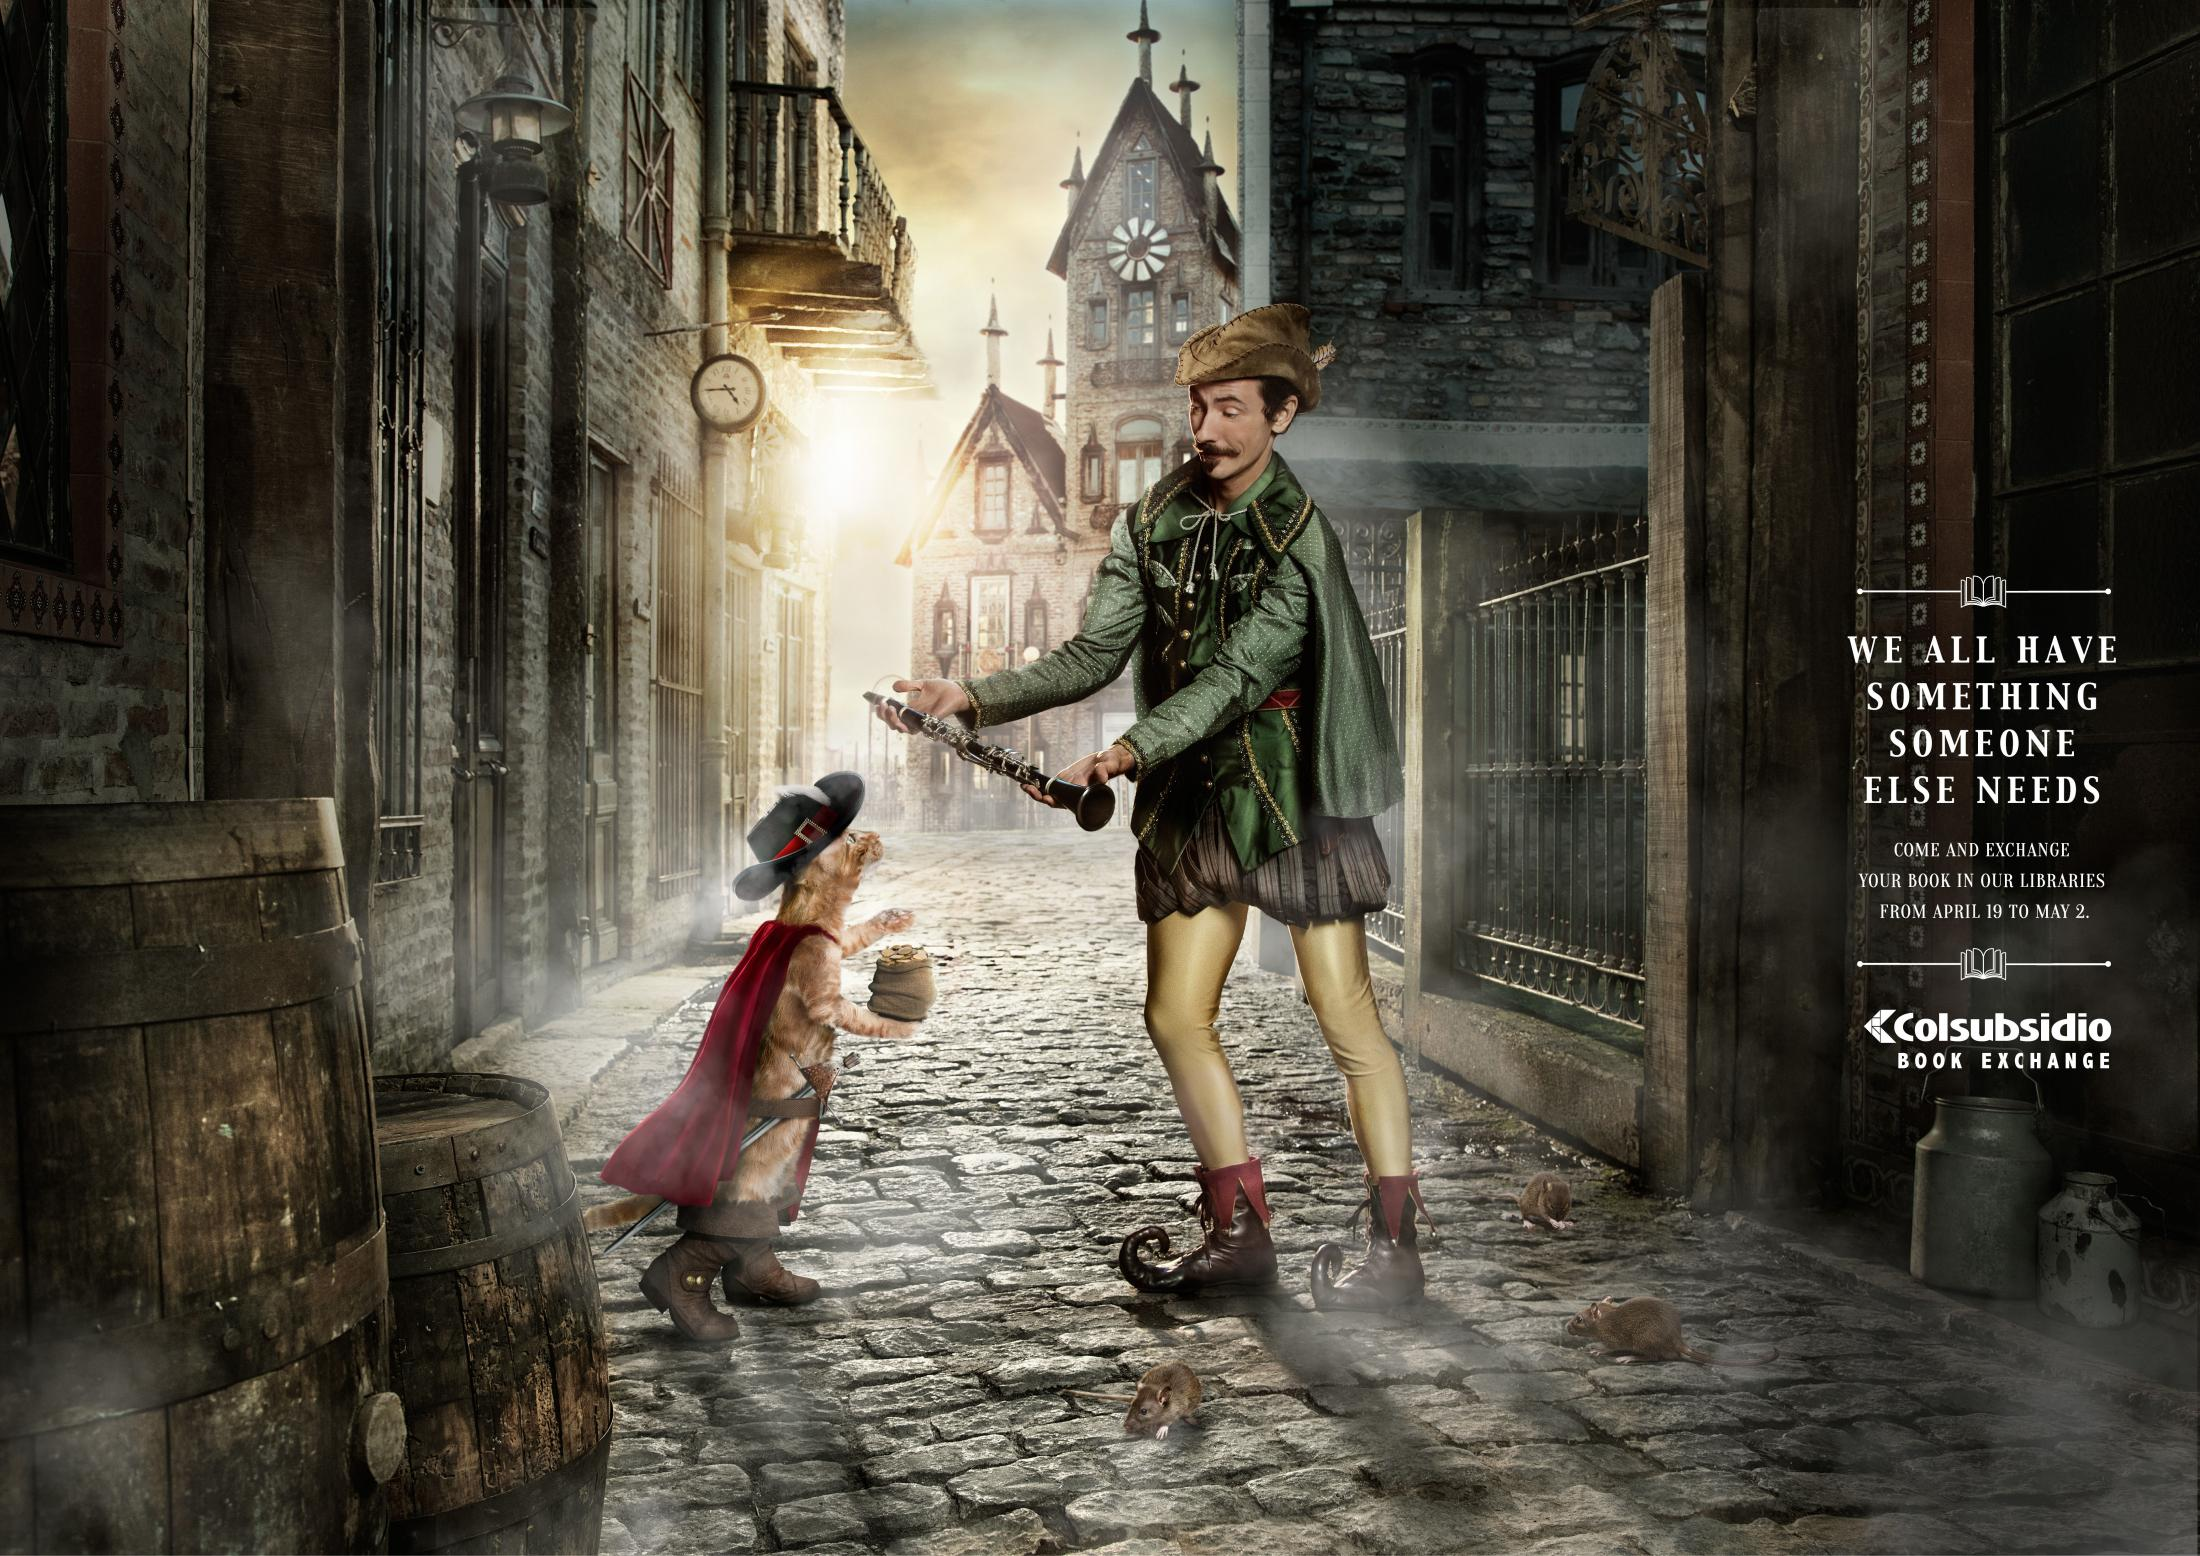 Thumbnail for Exchanges - Puss in Boots/The Pied Piper of Hamelin